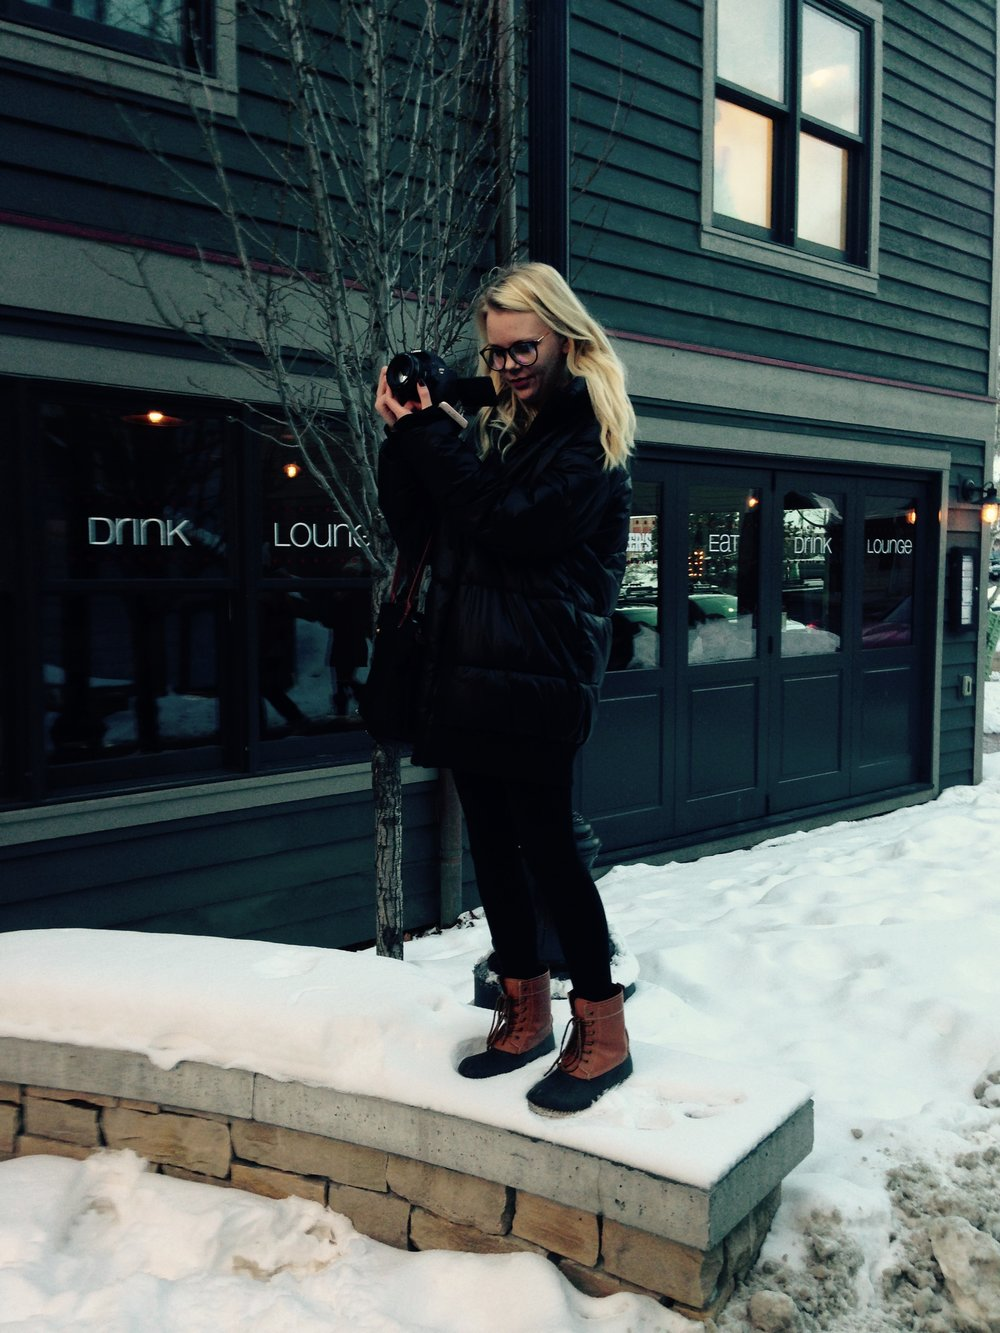 Ali Thompson captures the beauty of Park City's Main Street after a snowfall.